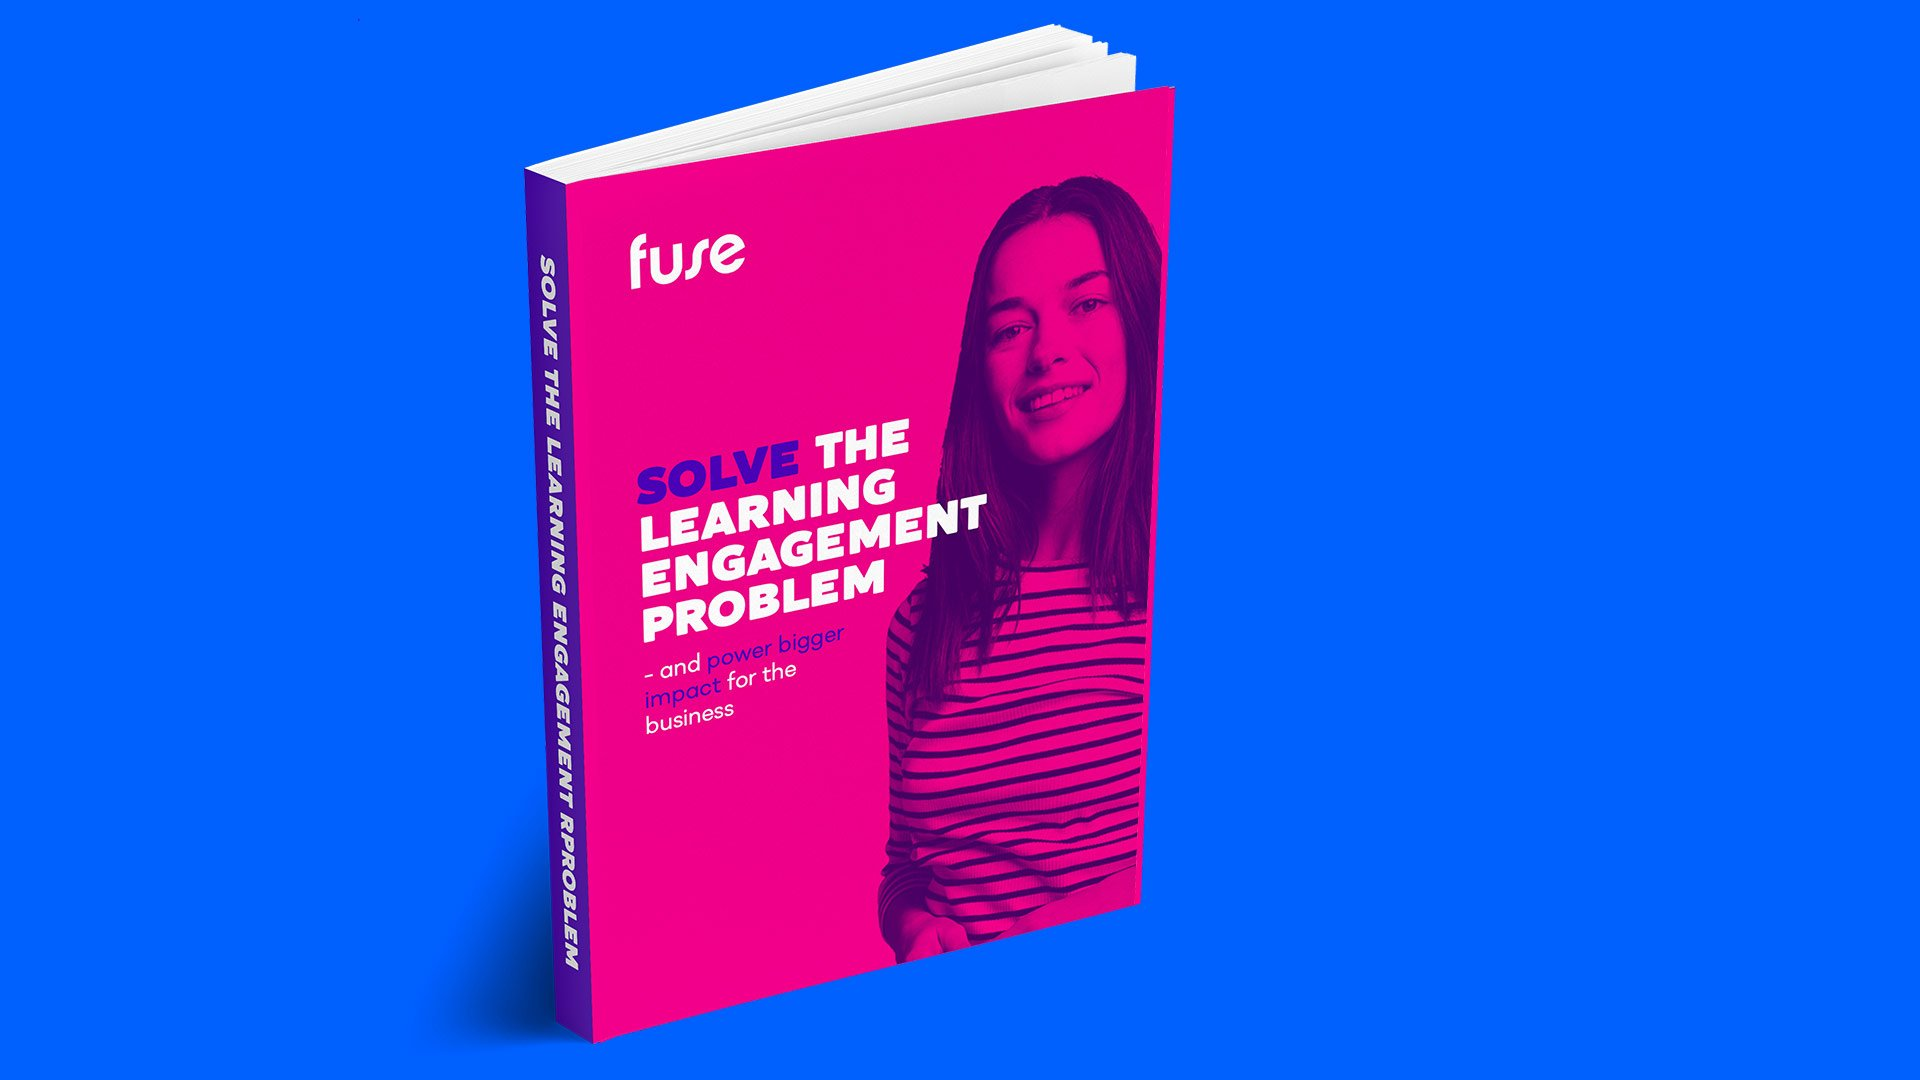 Solve the Learning Engagement Problem eBook